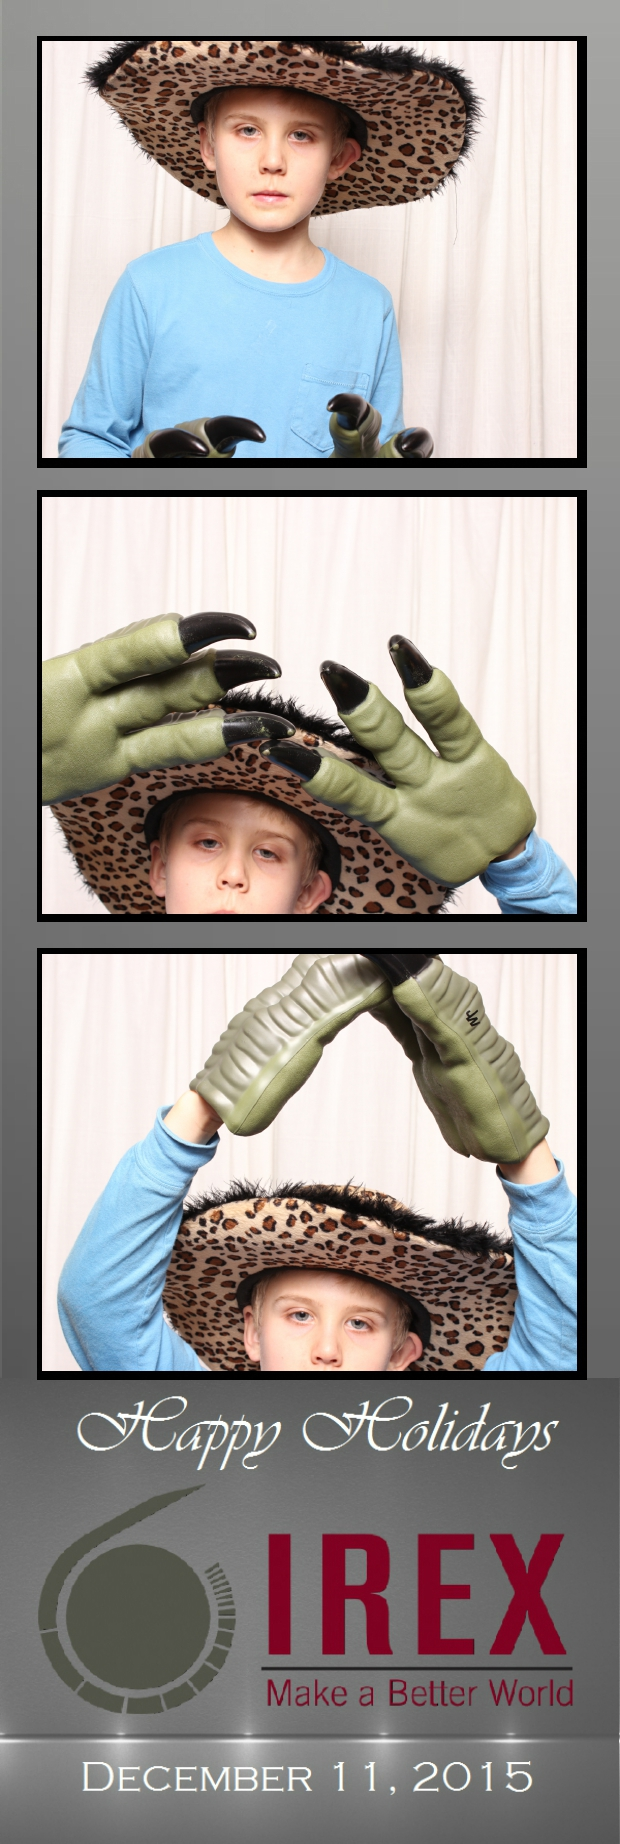 Guest House Events Photo Booth Strips IREX (89).jpg